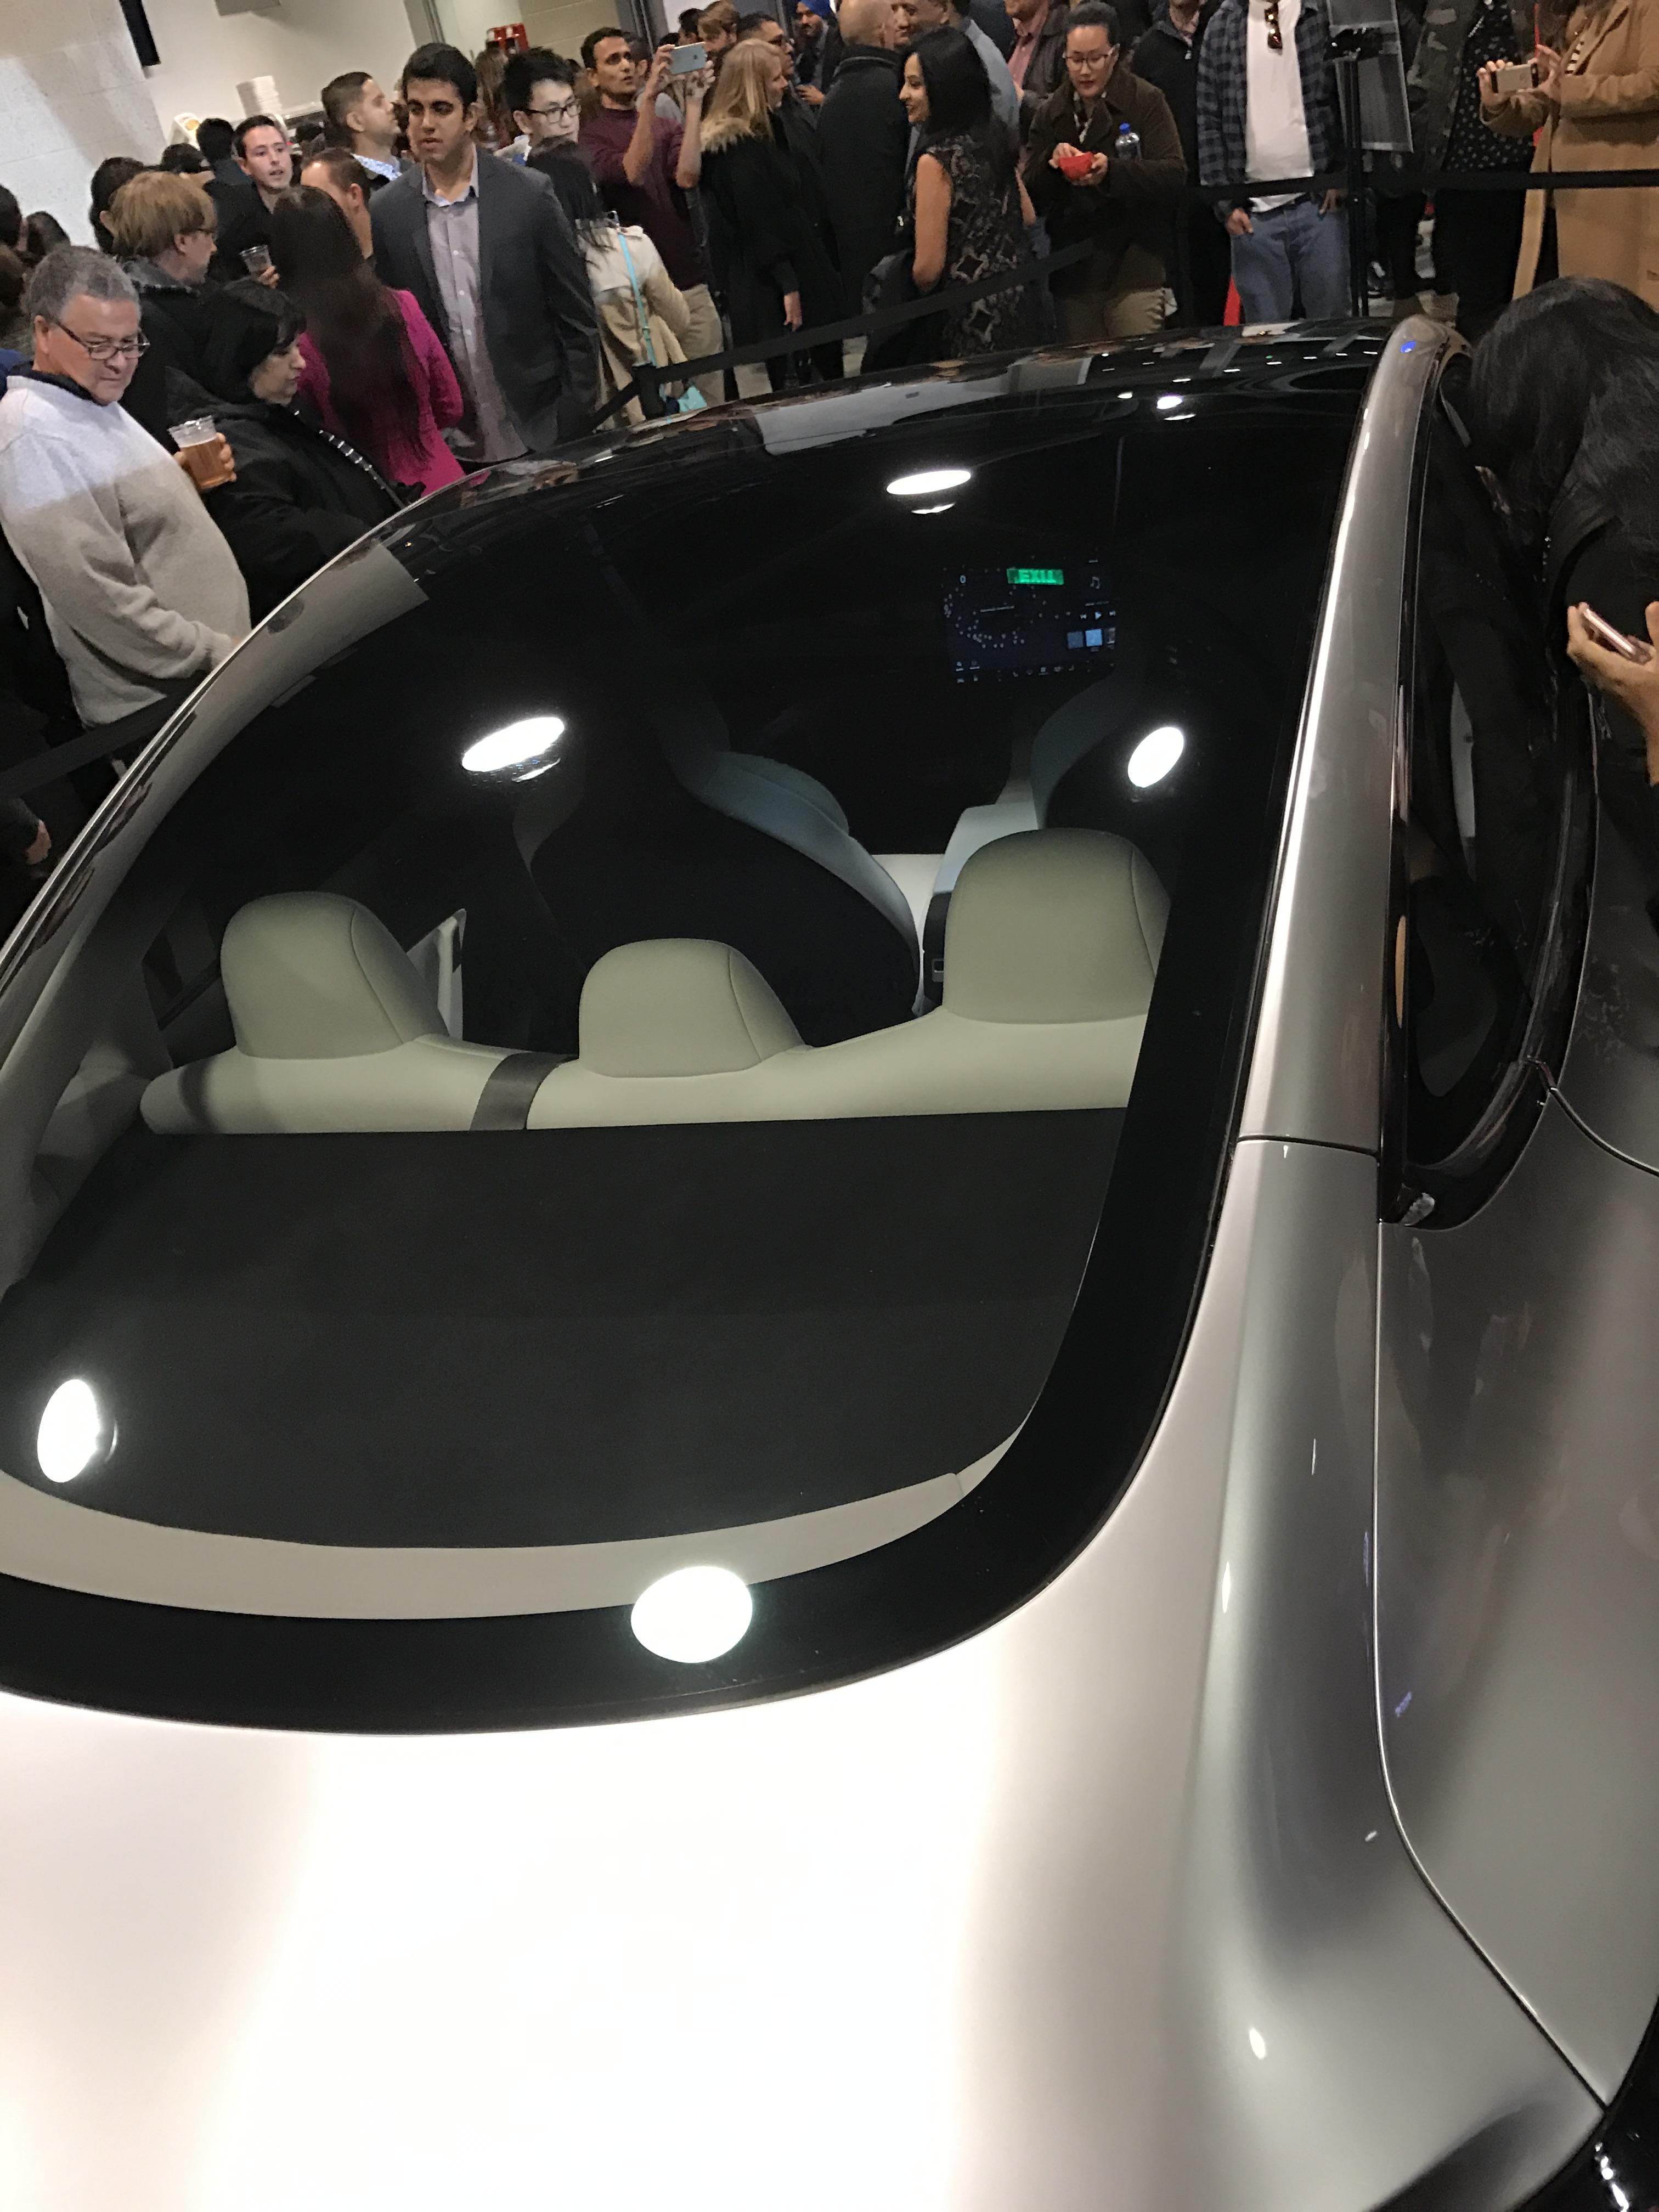 Silver Tesla Model 3 Glass Roof the Avaya Stadium [Credit: ryaneager via imgur]